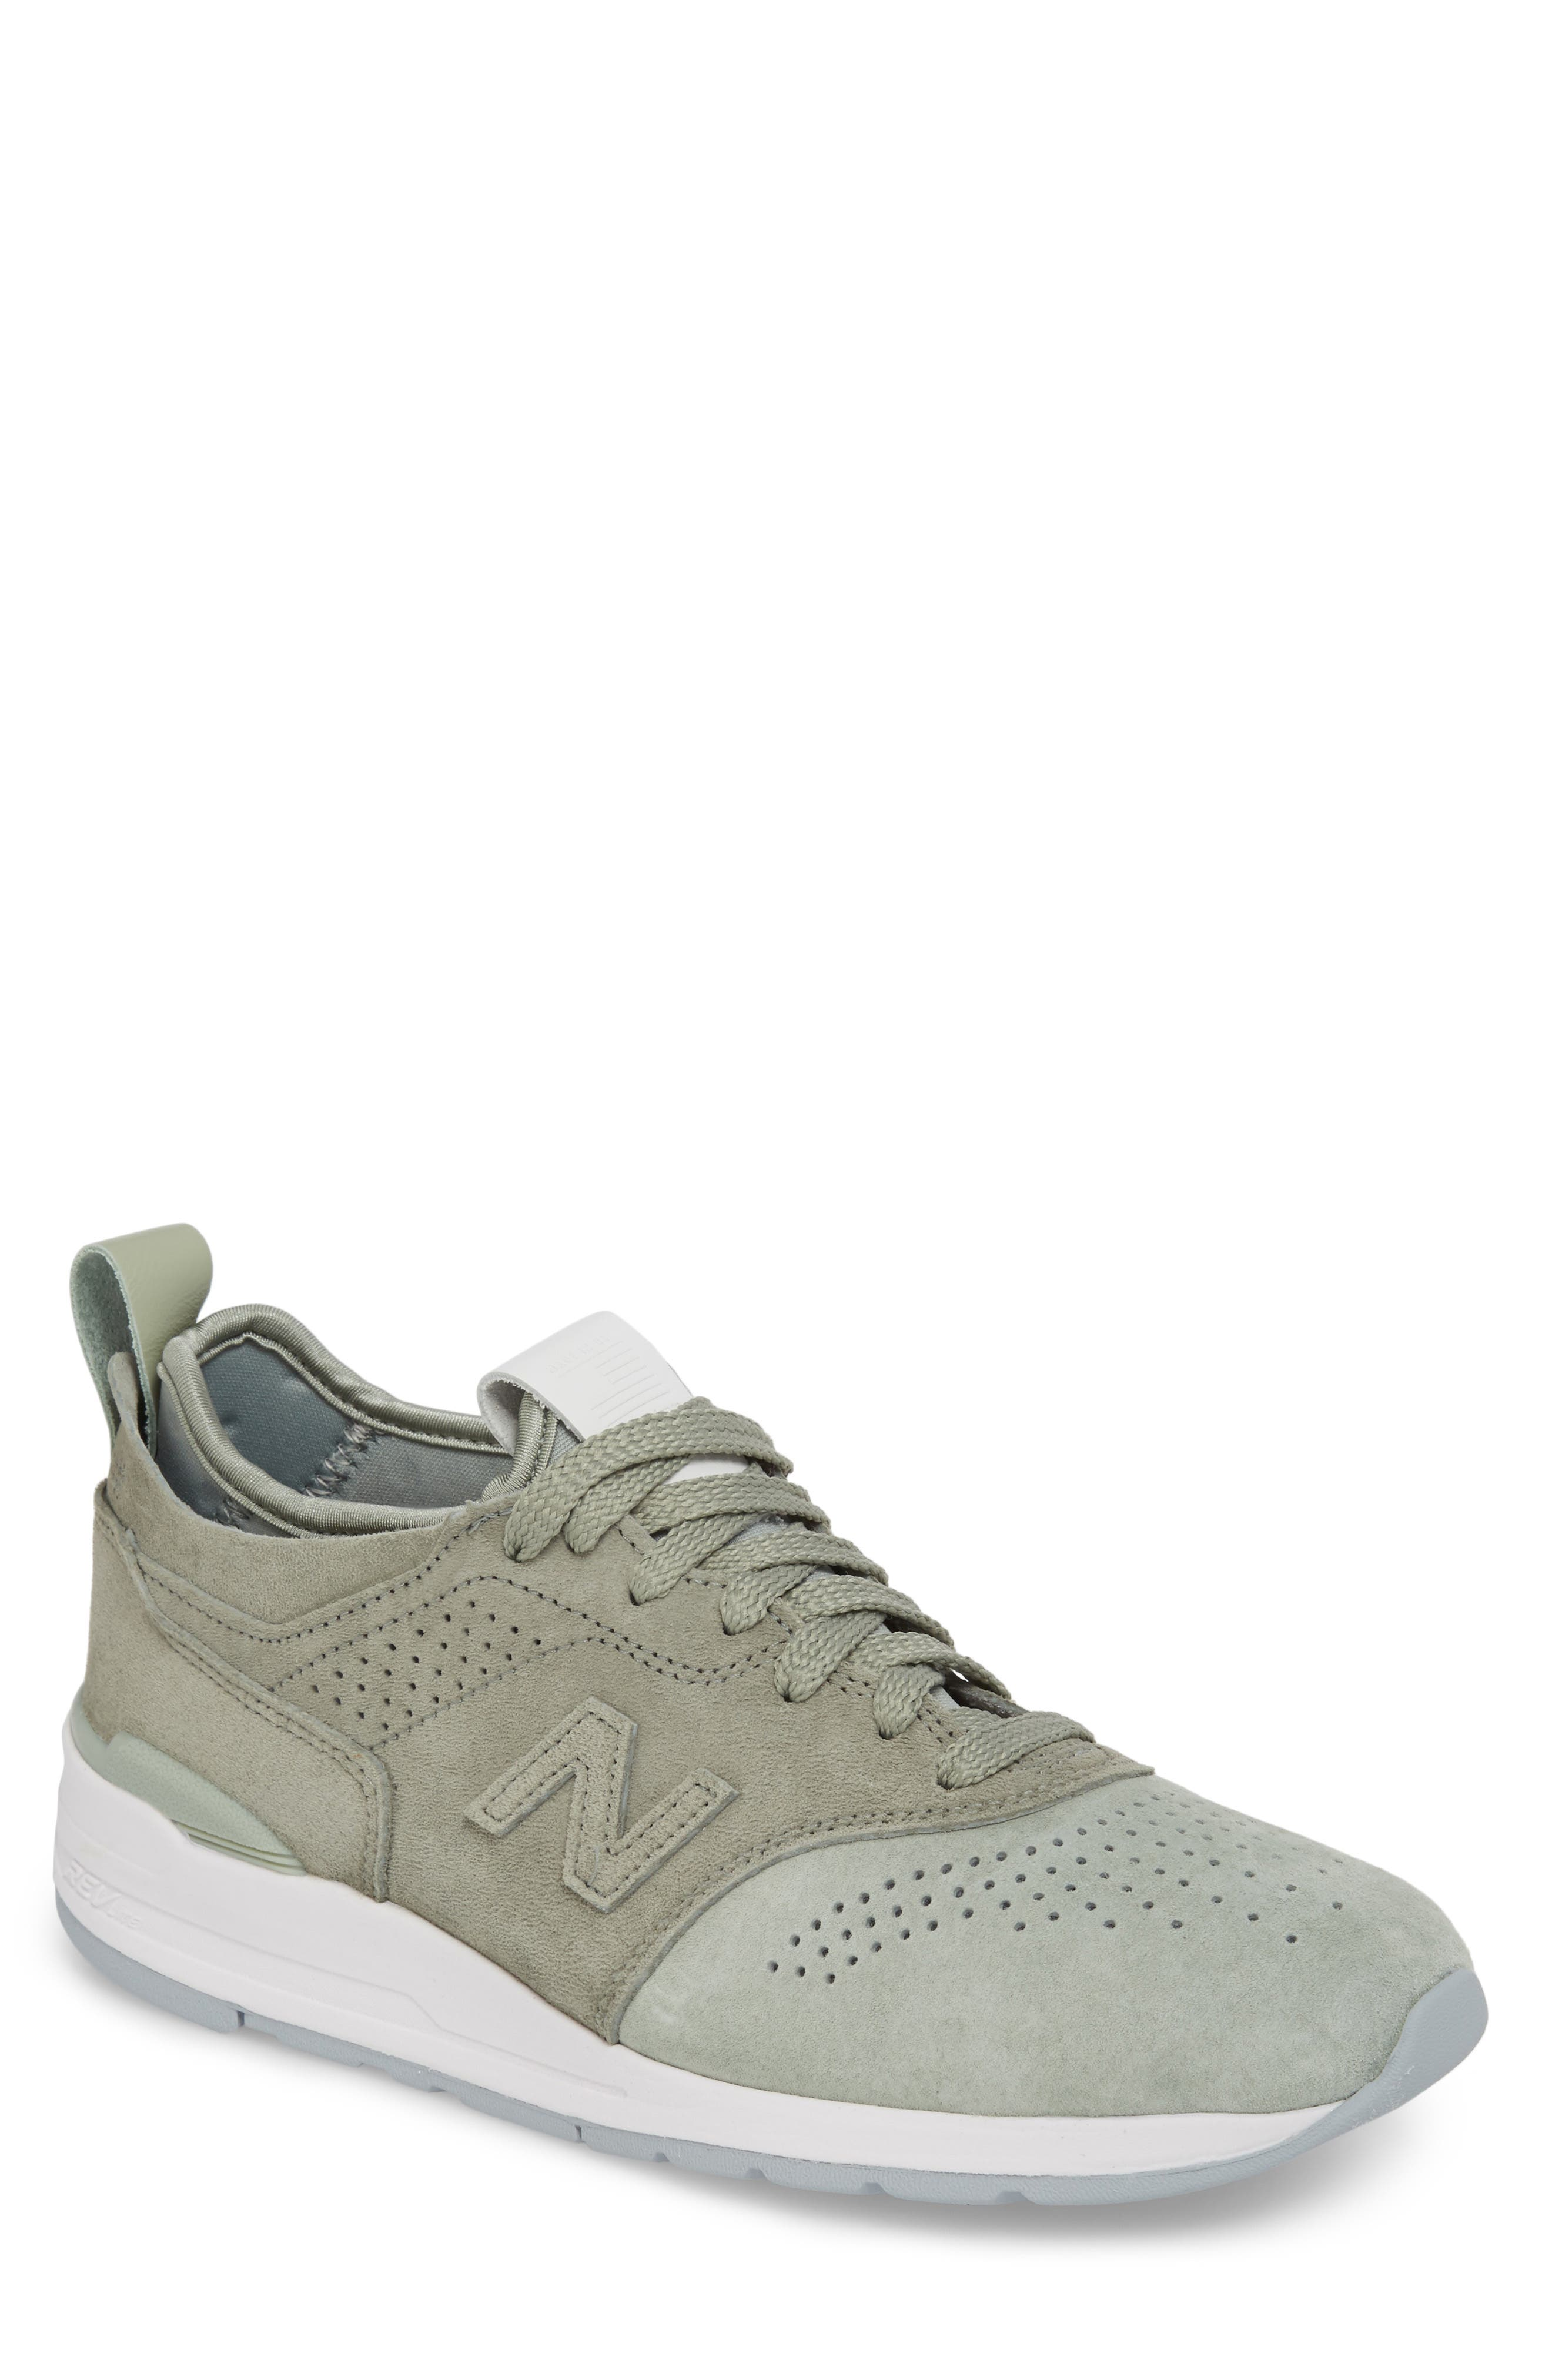 997R Perforated Sneaker,                         Main,                         color, 308